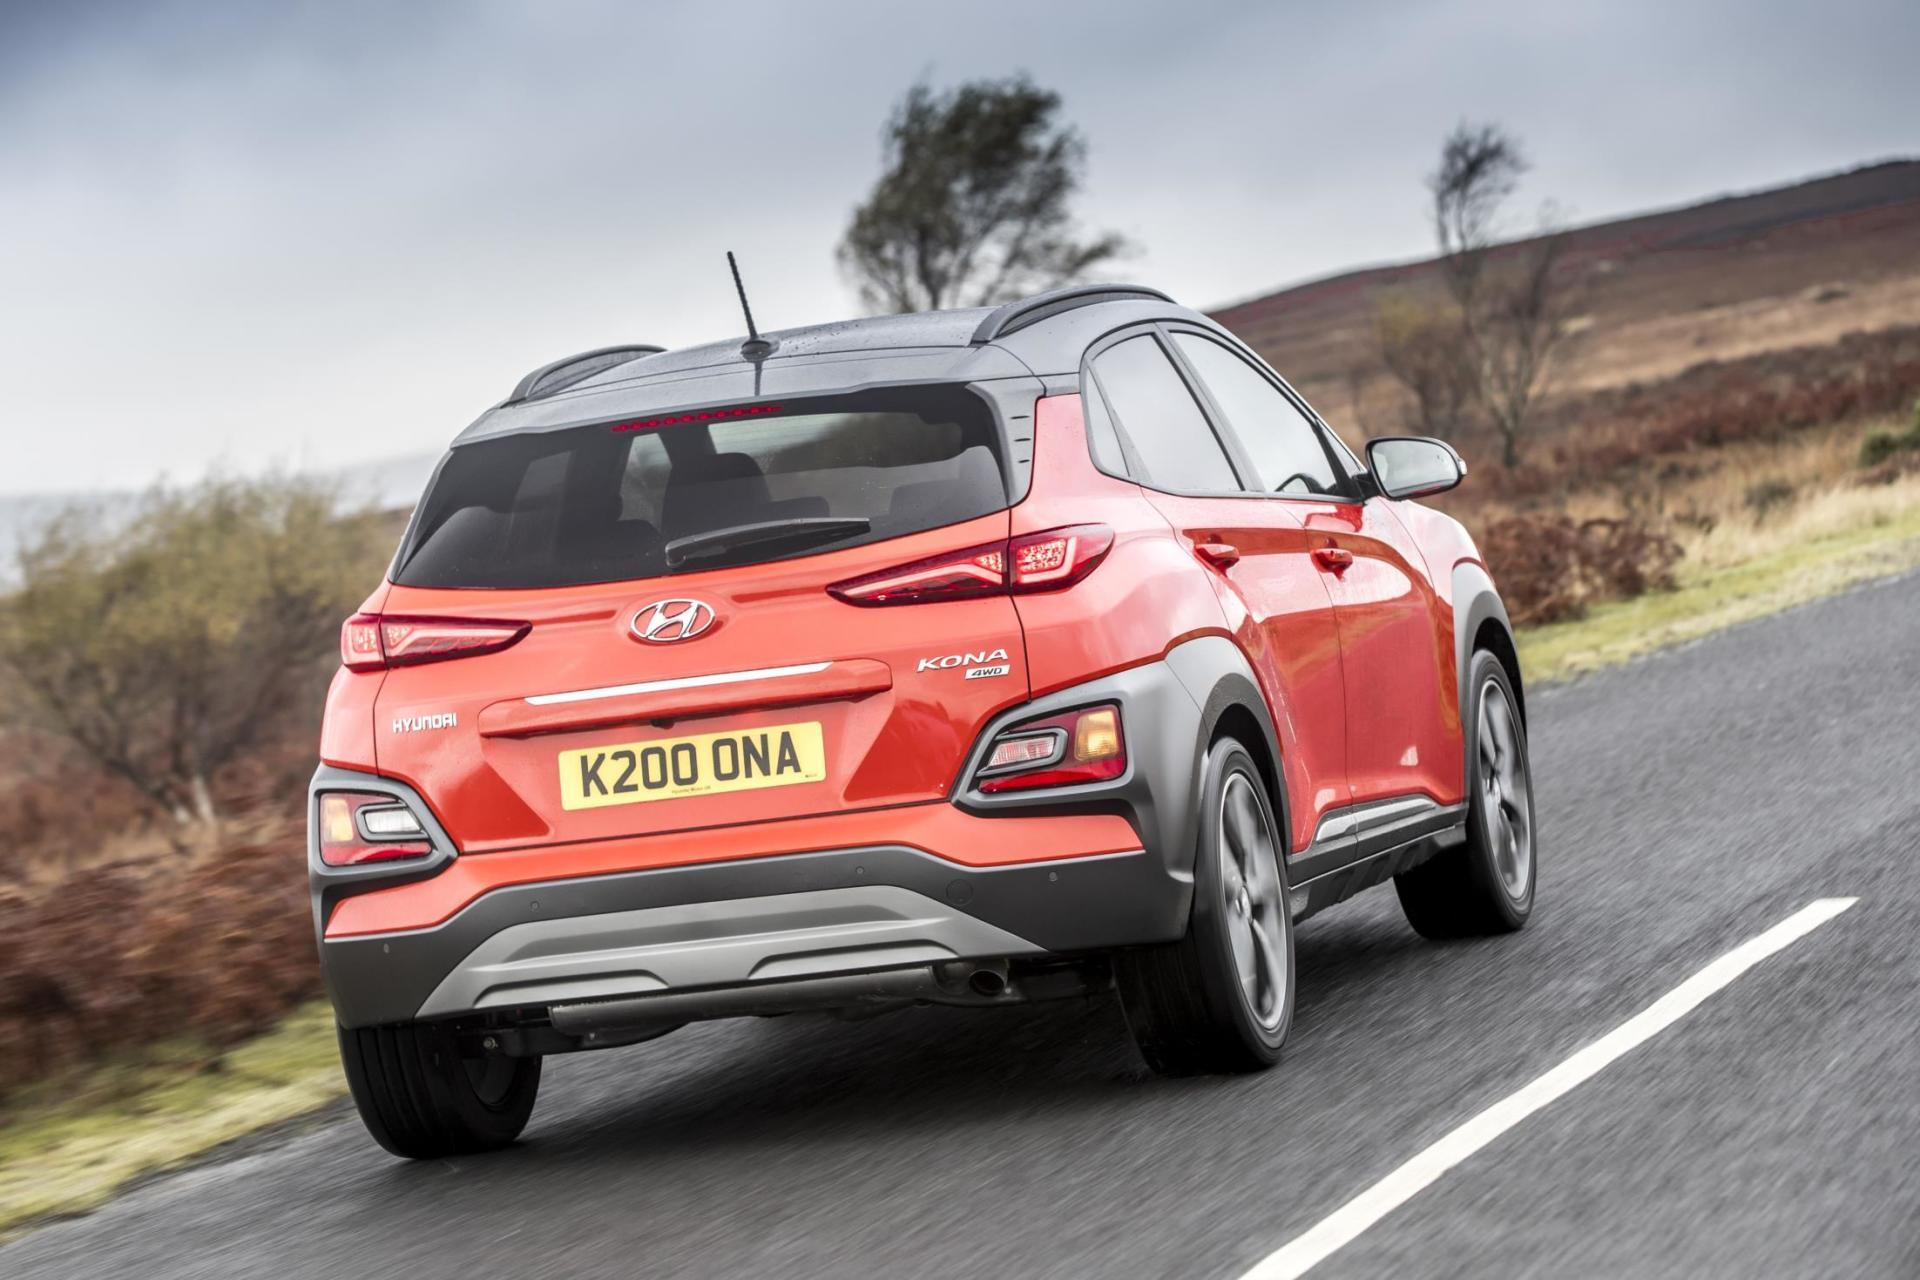 el hyundai kona es con permiso del kia stonic el suv de moda y te traemos 100 nuevas fotos. Black Bedroom Furniture Sets. Home Design Ideas